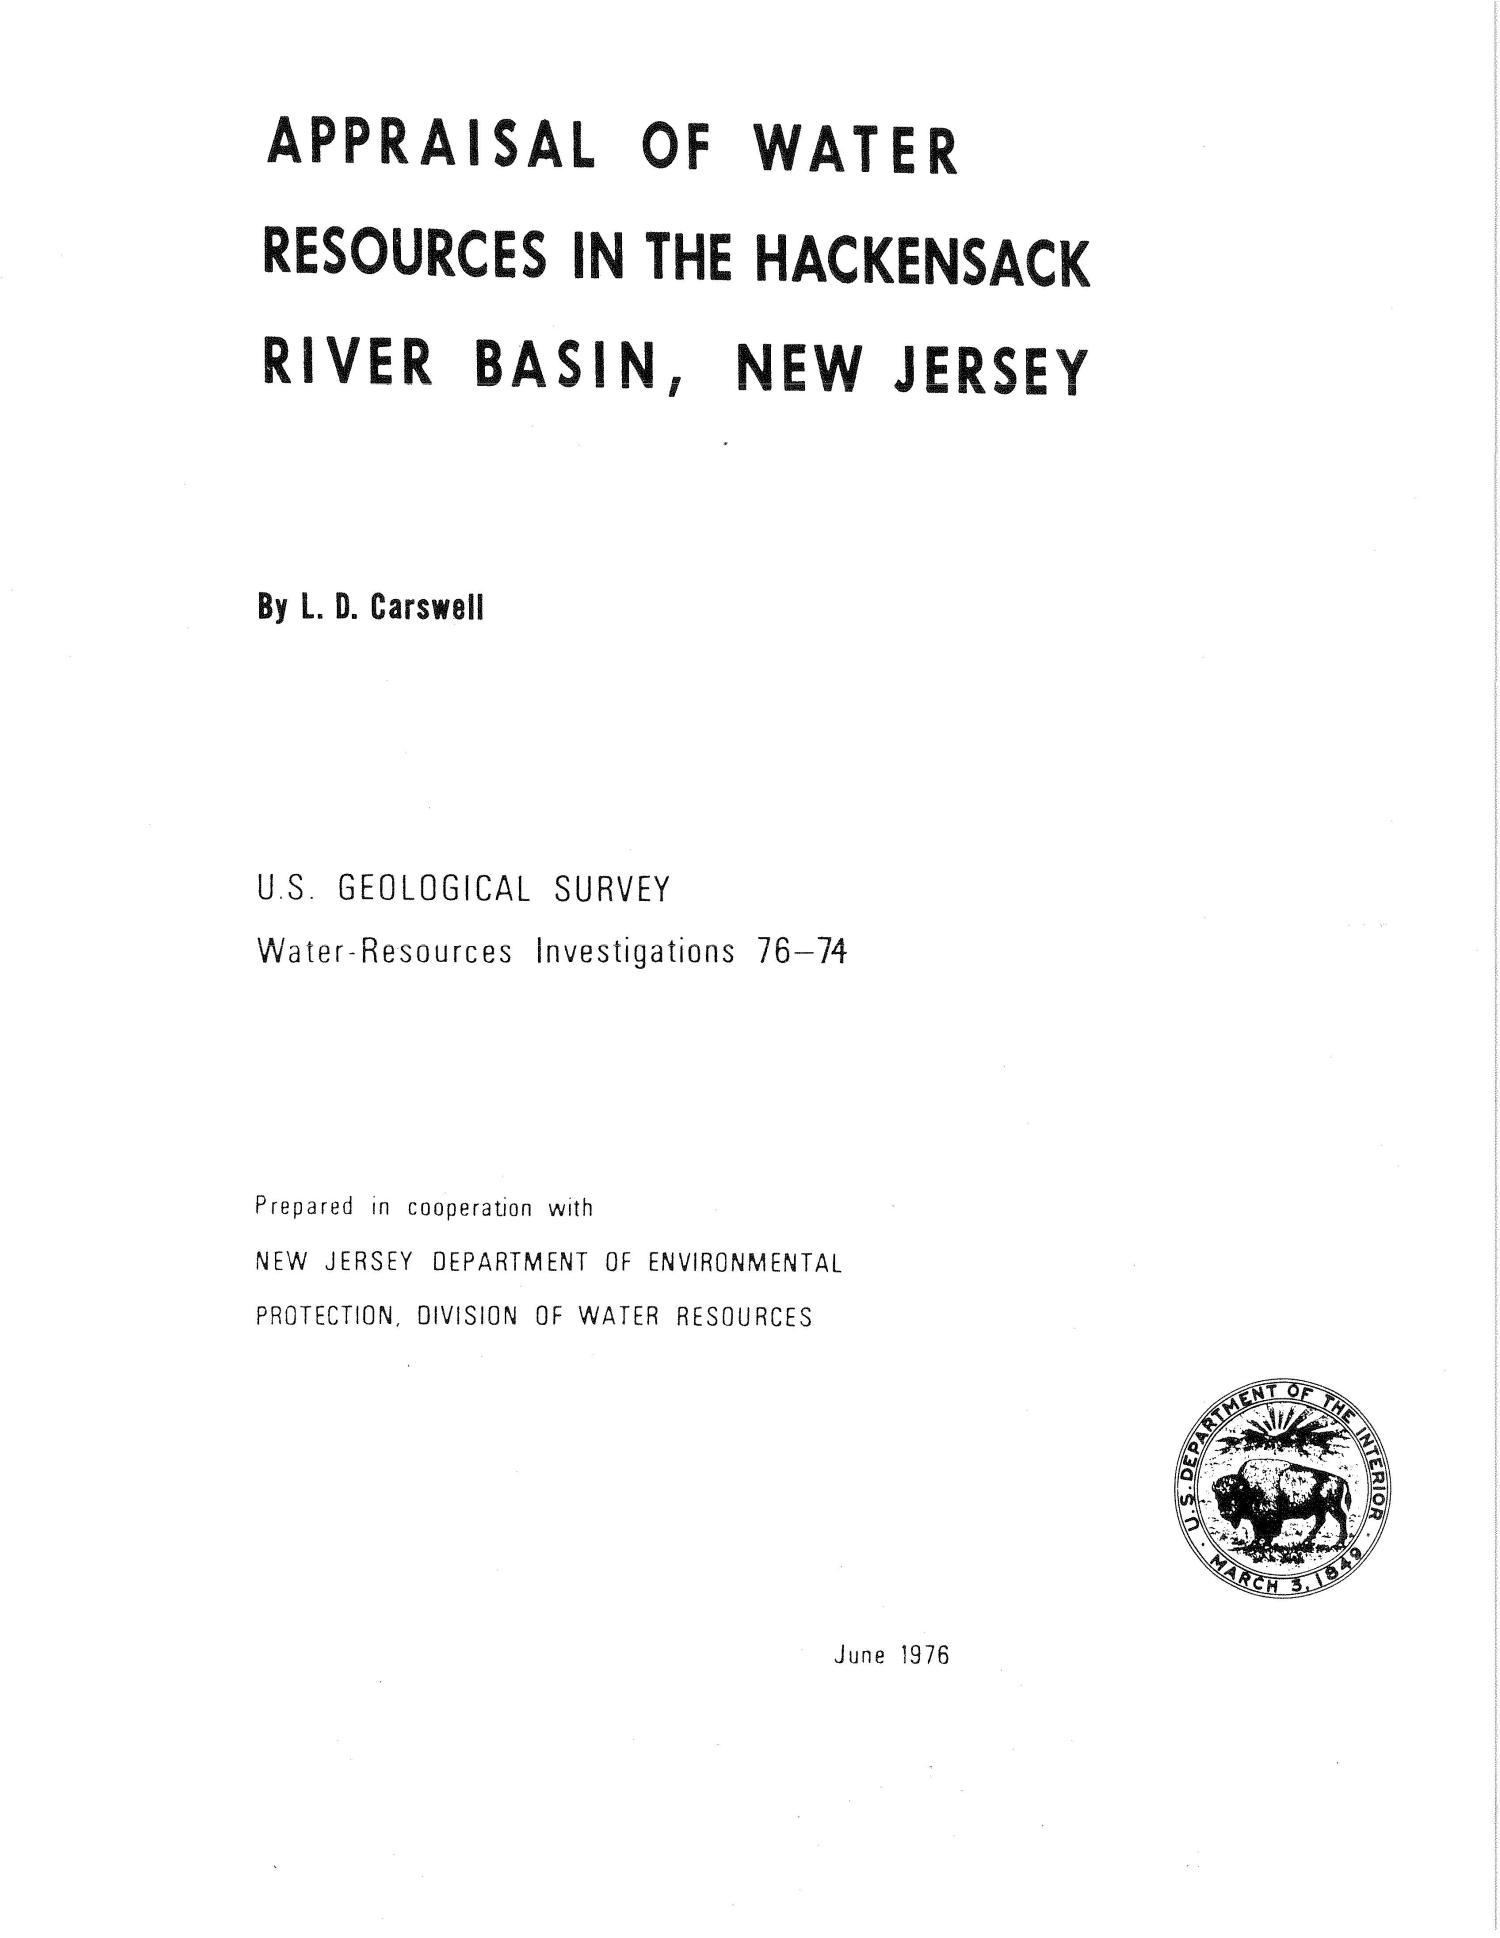 Appraisal of Water Resources in the Hackensack River Basin, New Jersey                                                                                                      Title Page